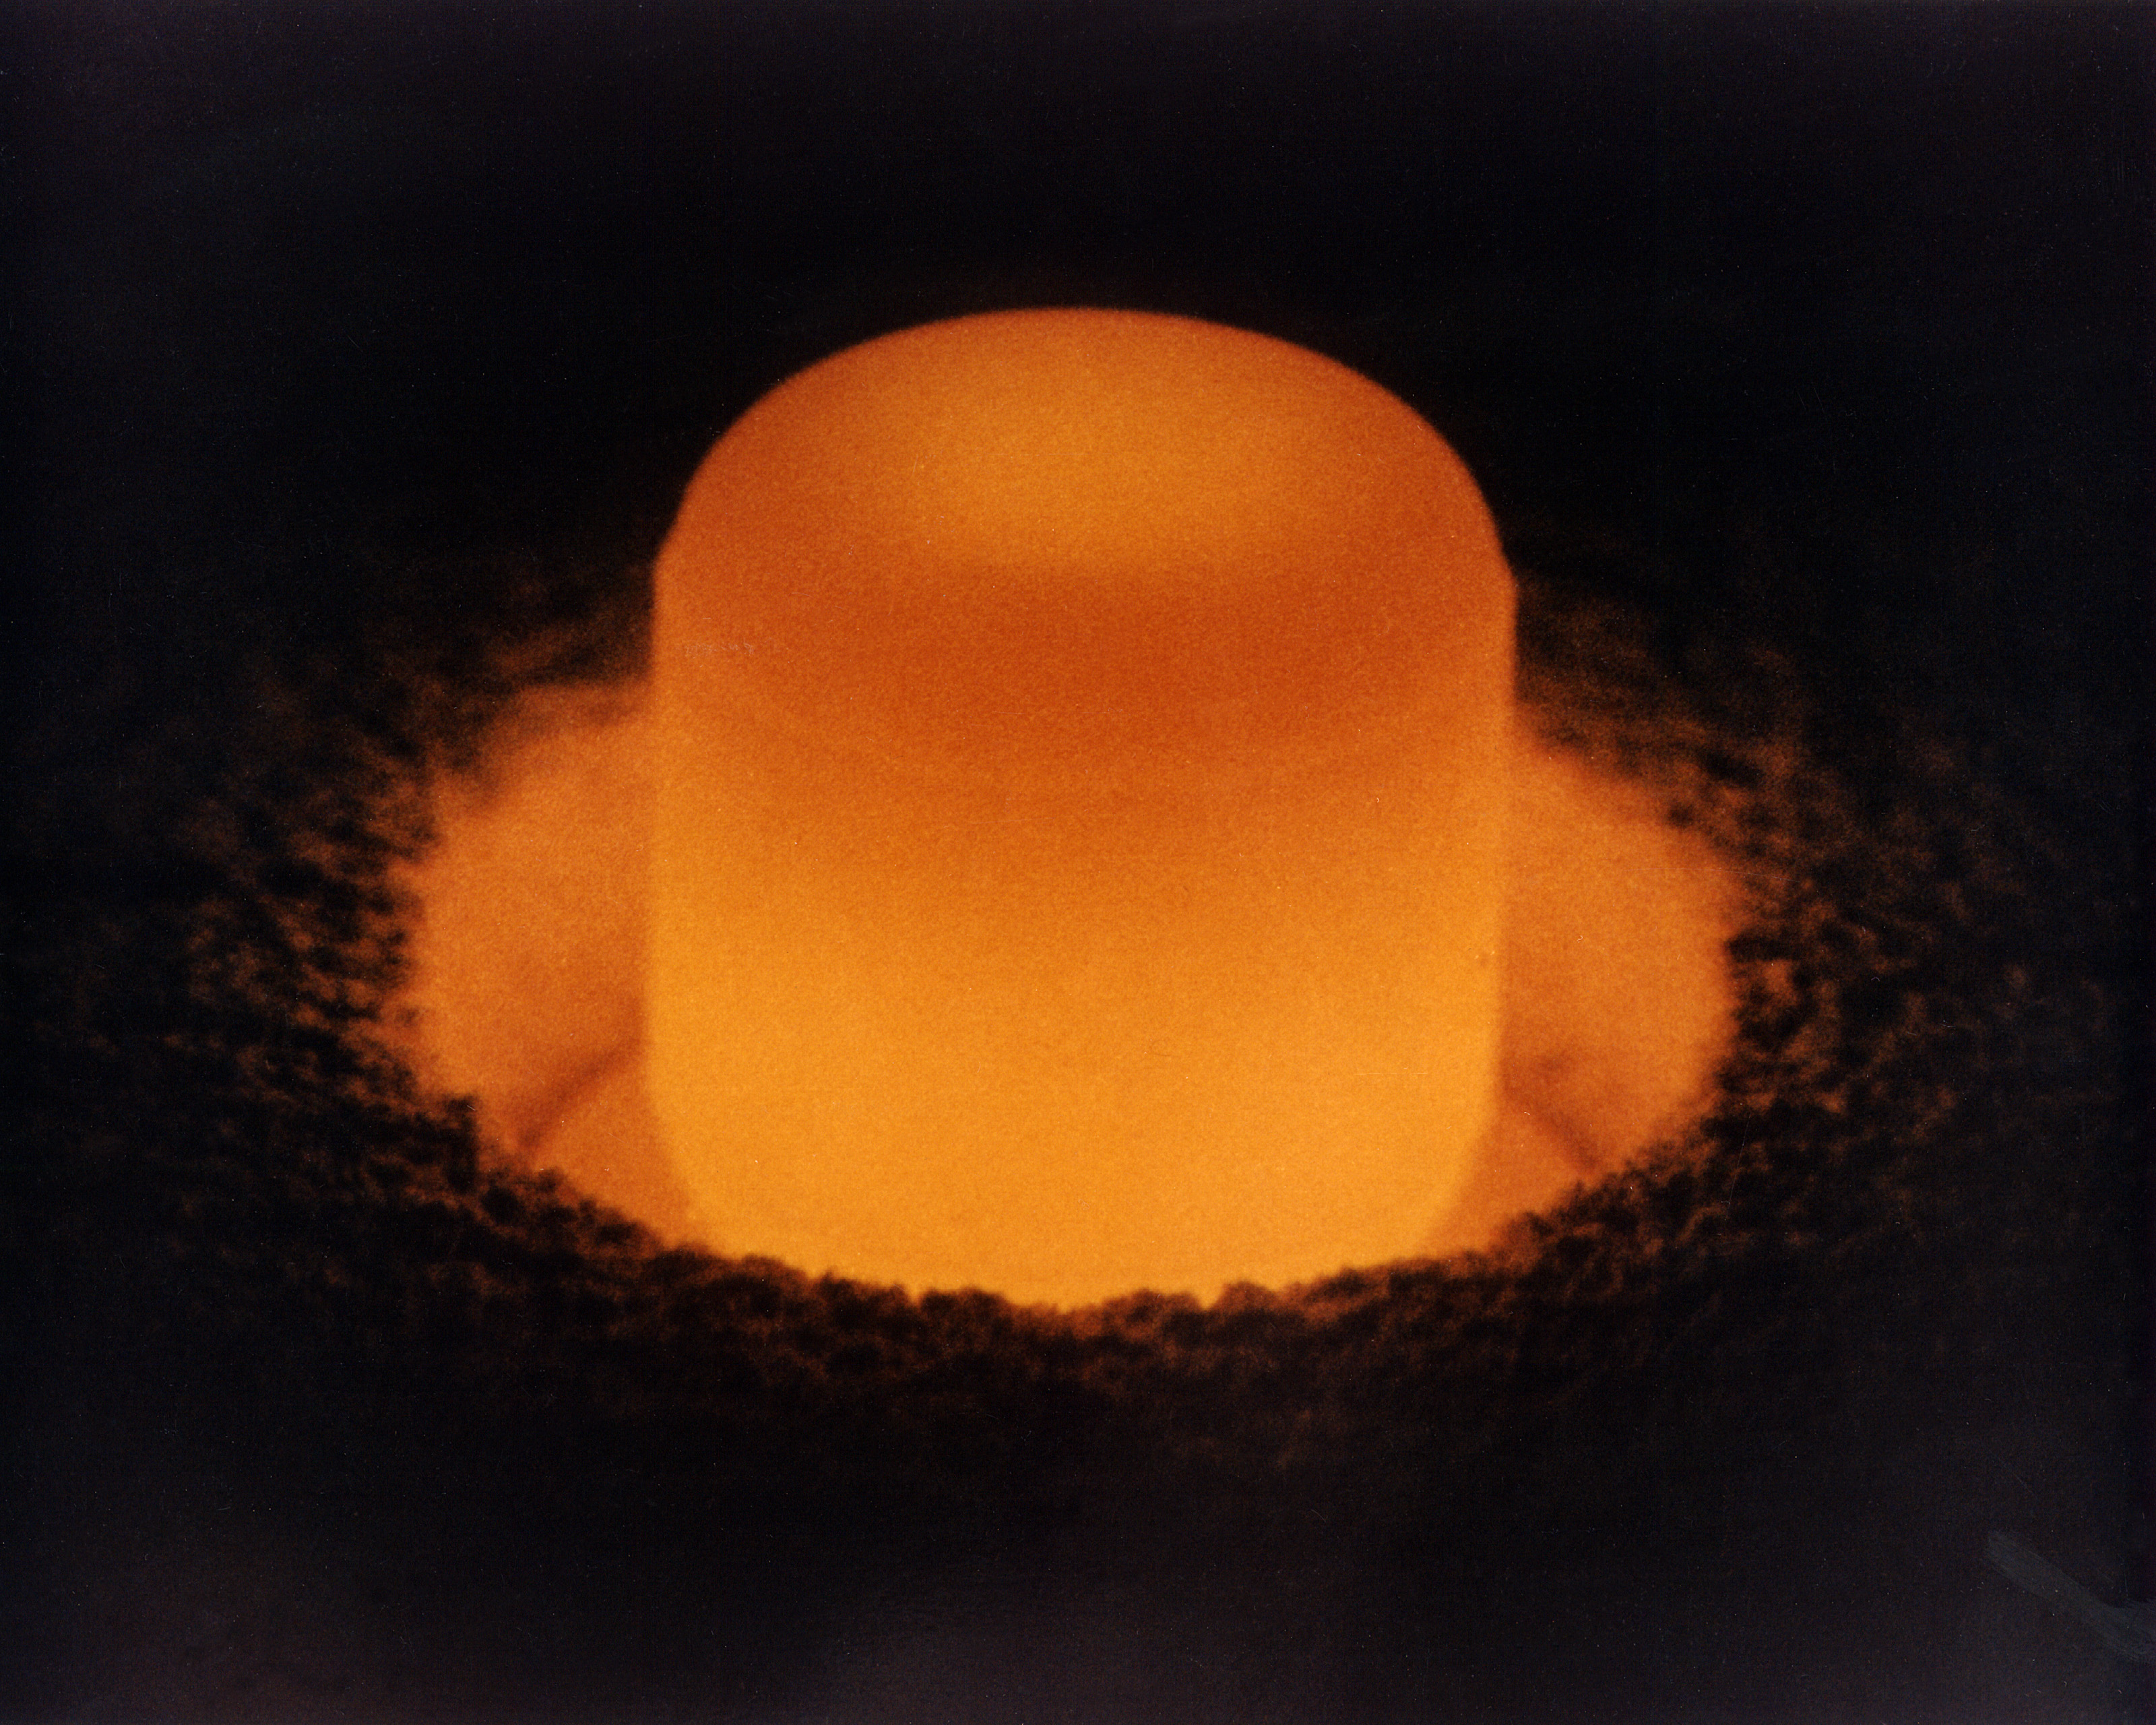 Glowing cylinder of plutonium oxide standing in a circular pit